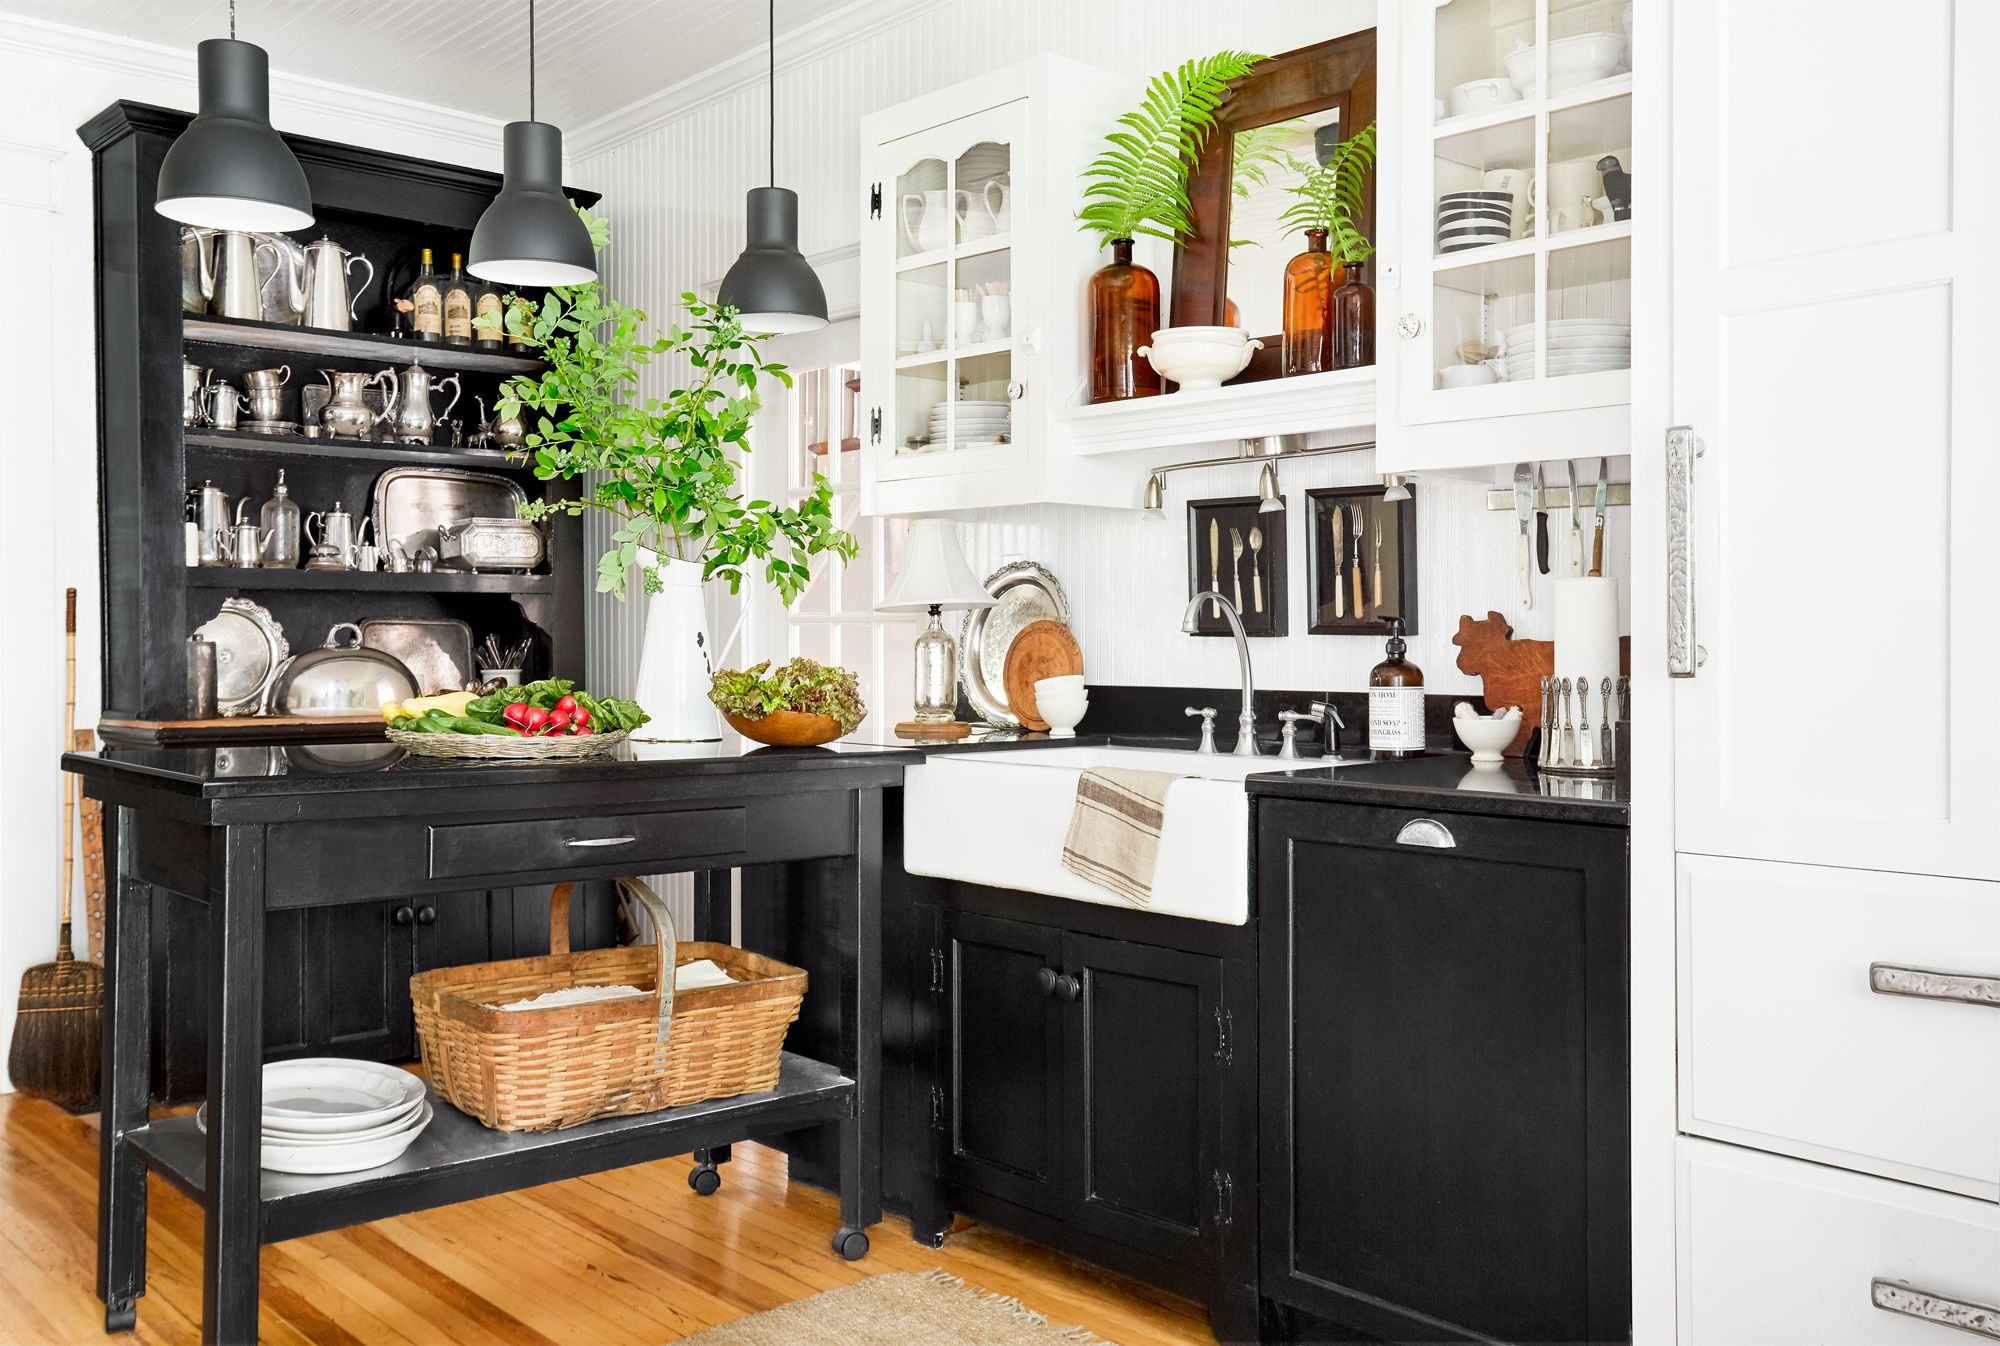 24 farmhouse style kitchens rustic decor ideas for kitchens rh countryliving com country kitchen blackpool country kitchen black countertop